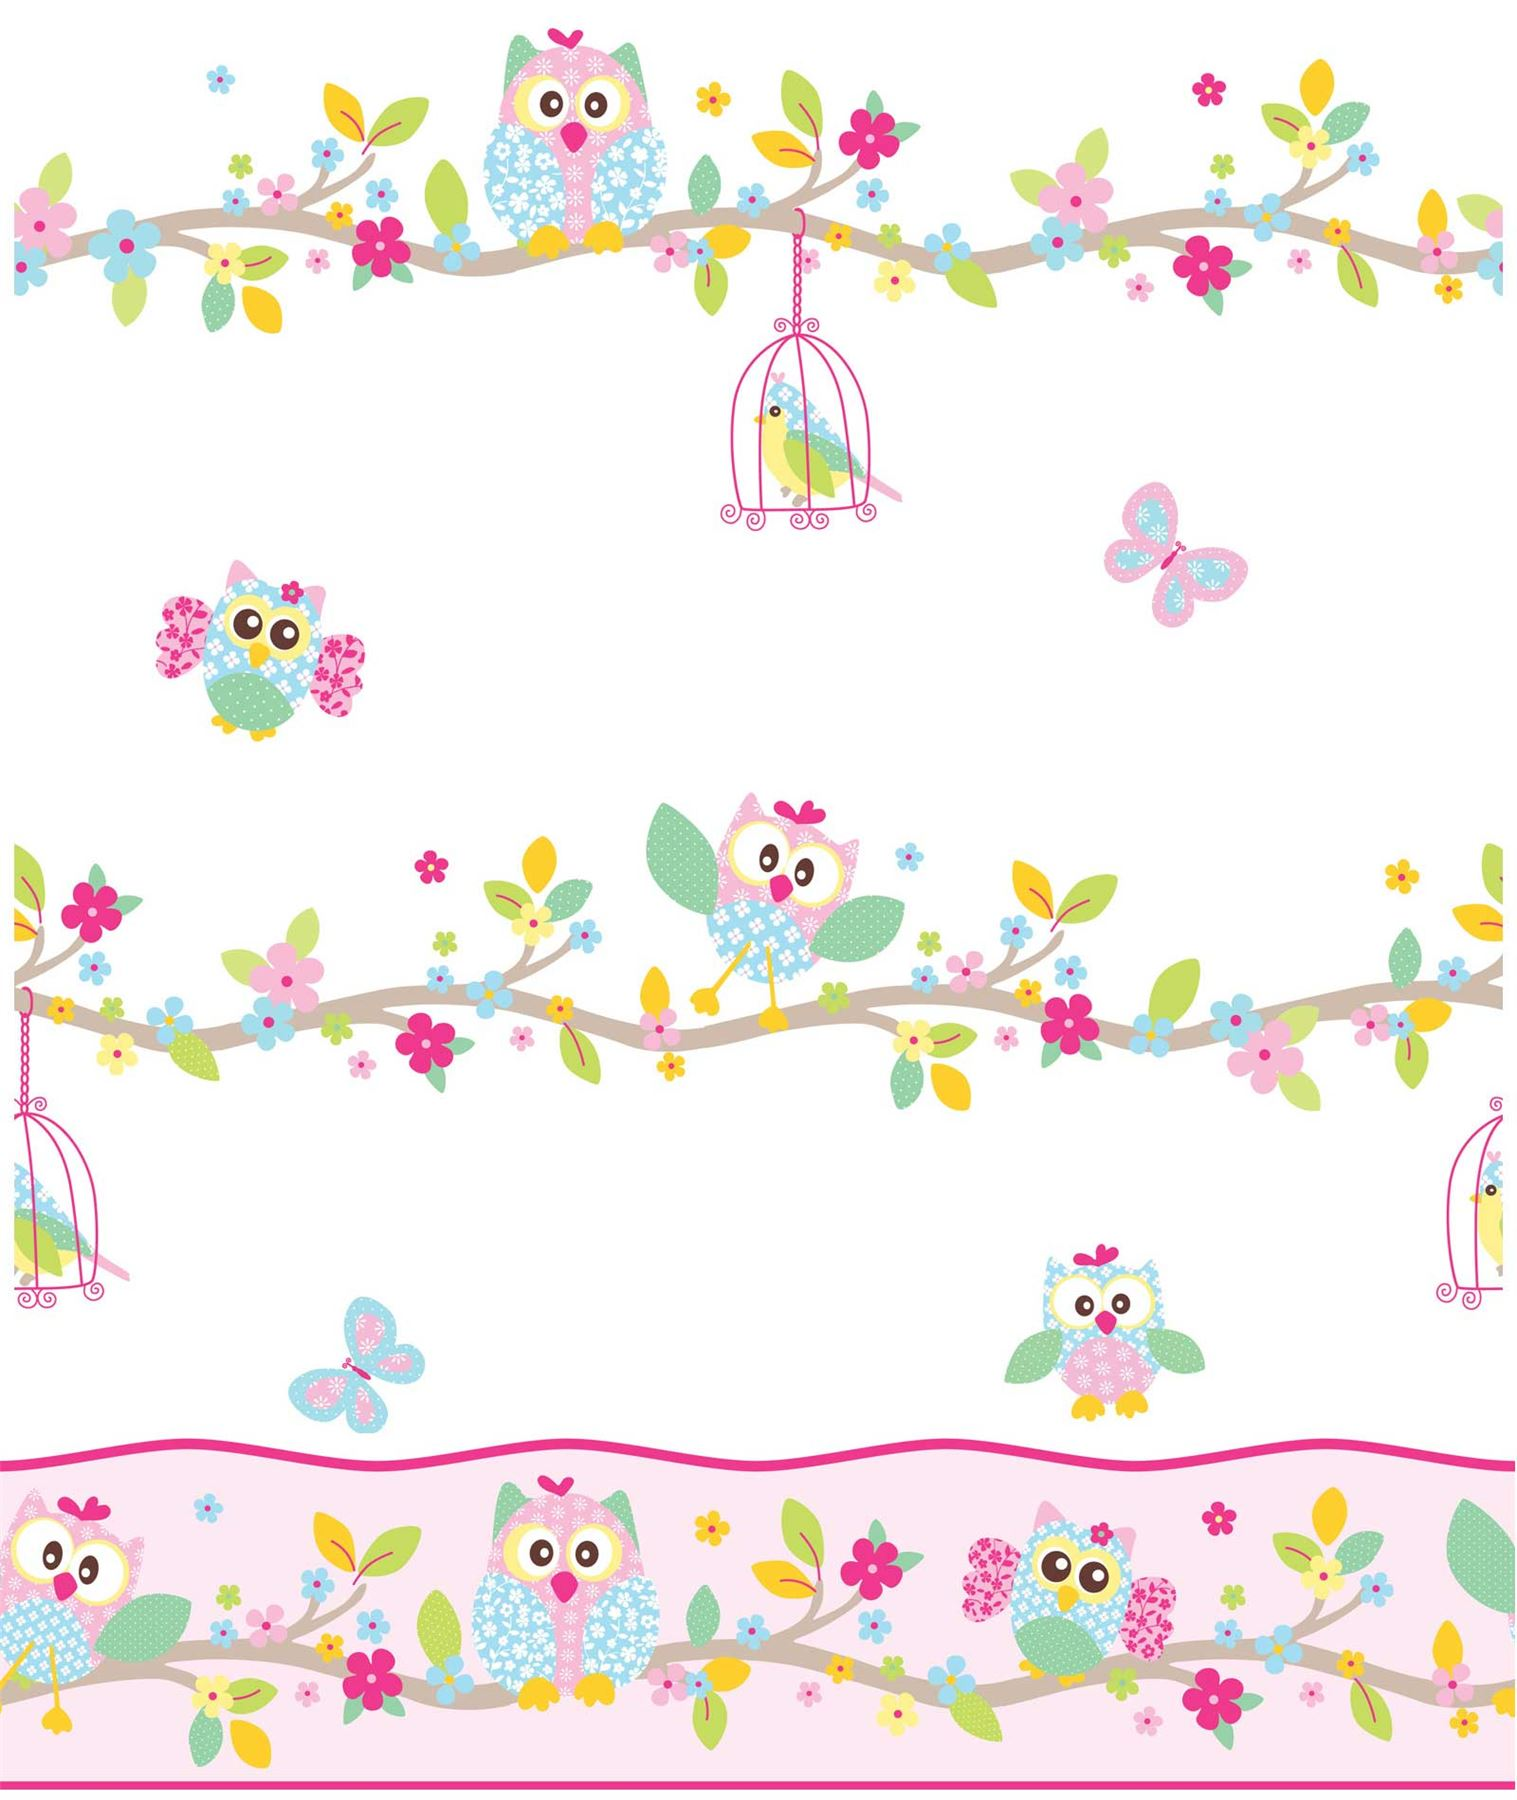 Details about PATCHWORK OWL WALLPAPER AND BORDER - WHITE PINK PASTEL BEDROOM NURSERY